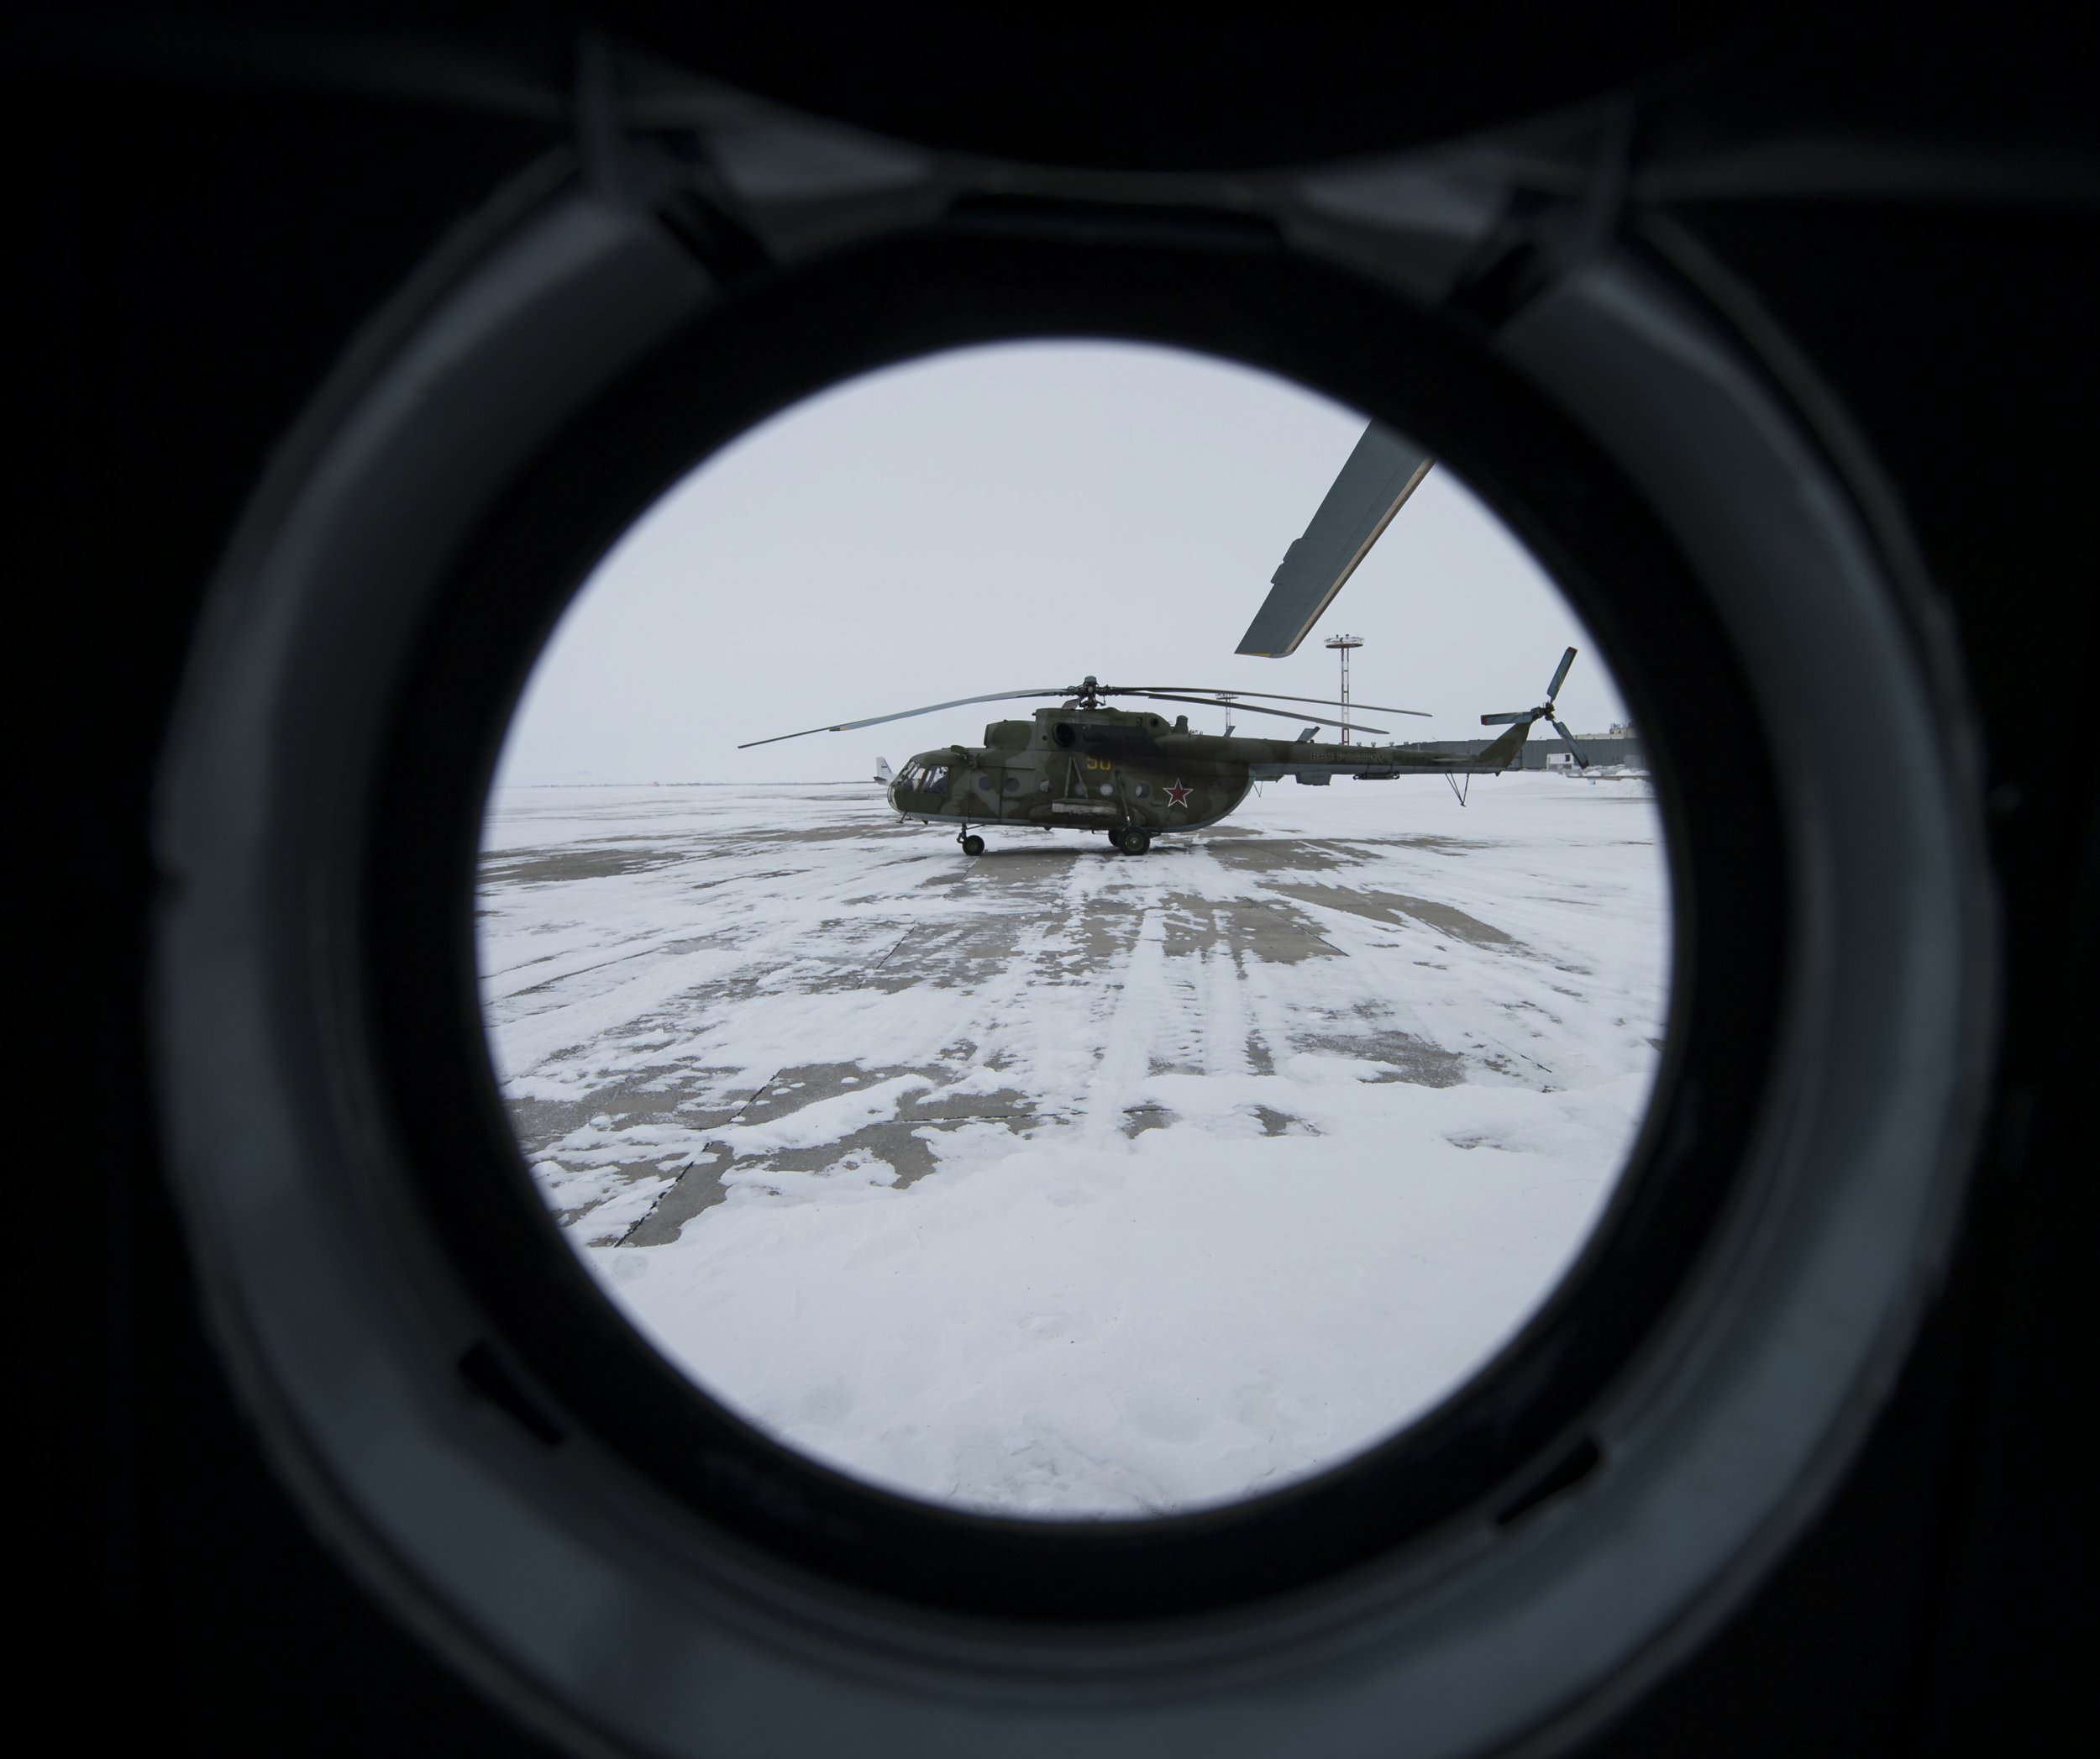 MI8 Helicopter seen through the window of another aircraft